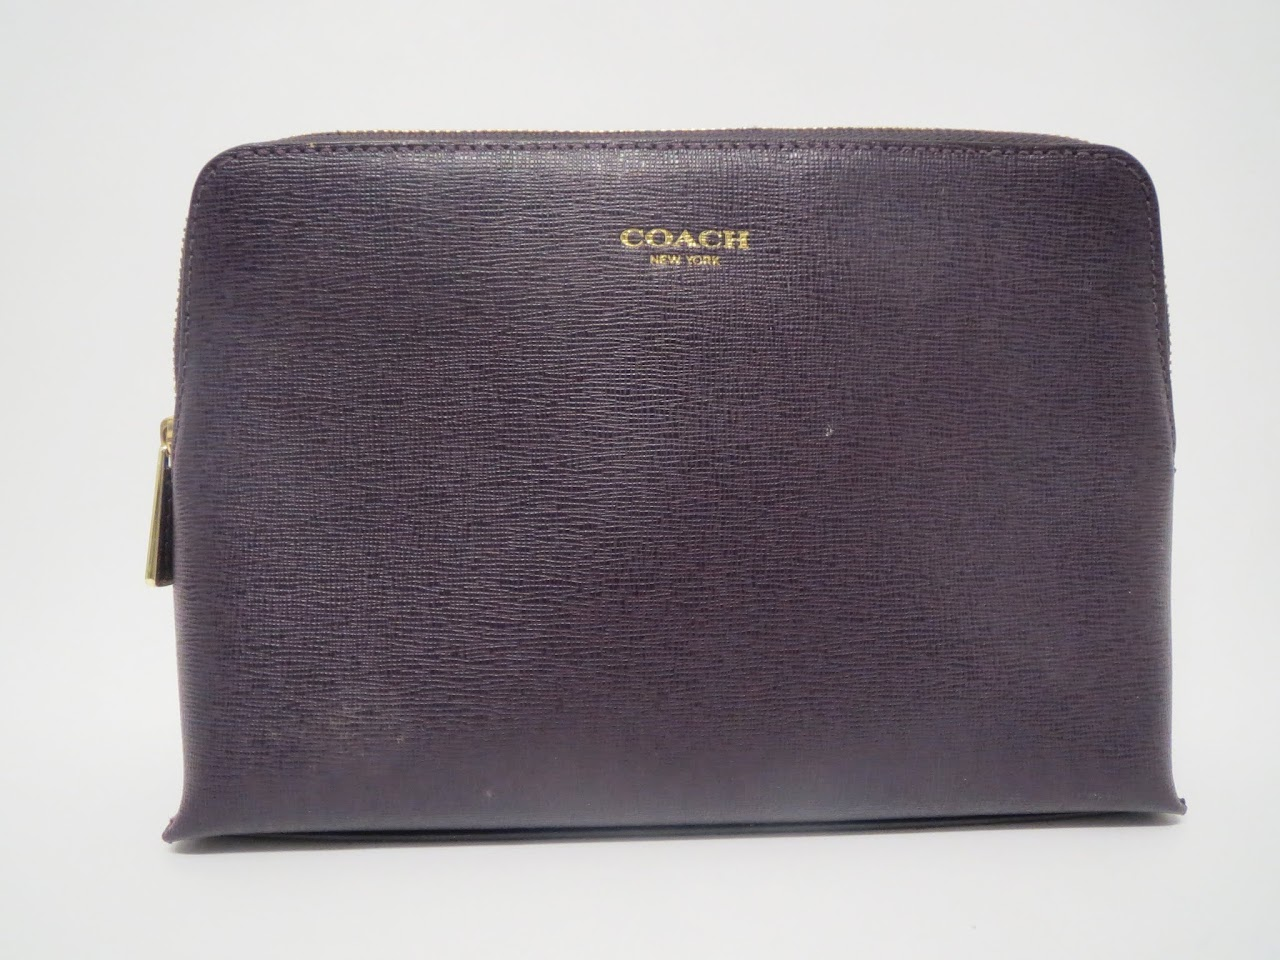 Coach Textured Leather Pouch